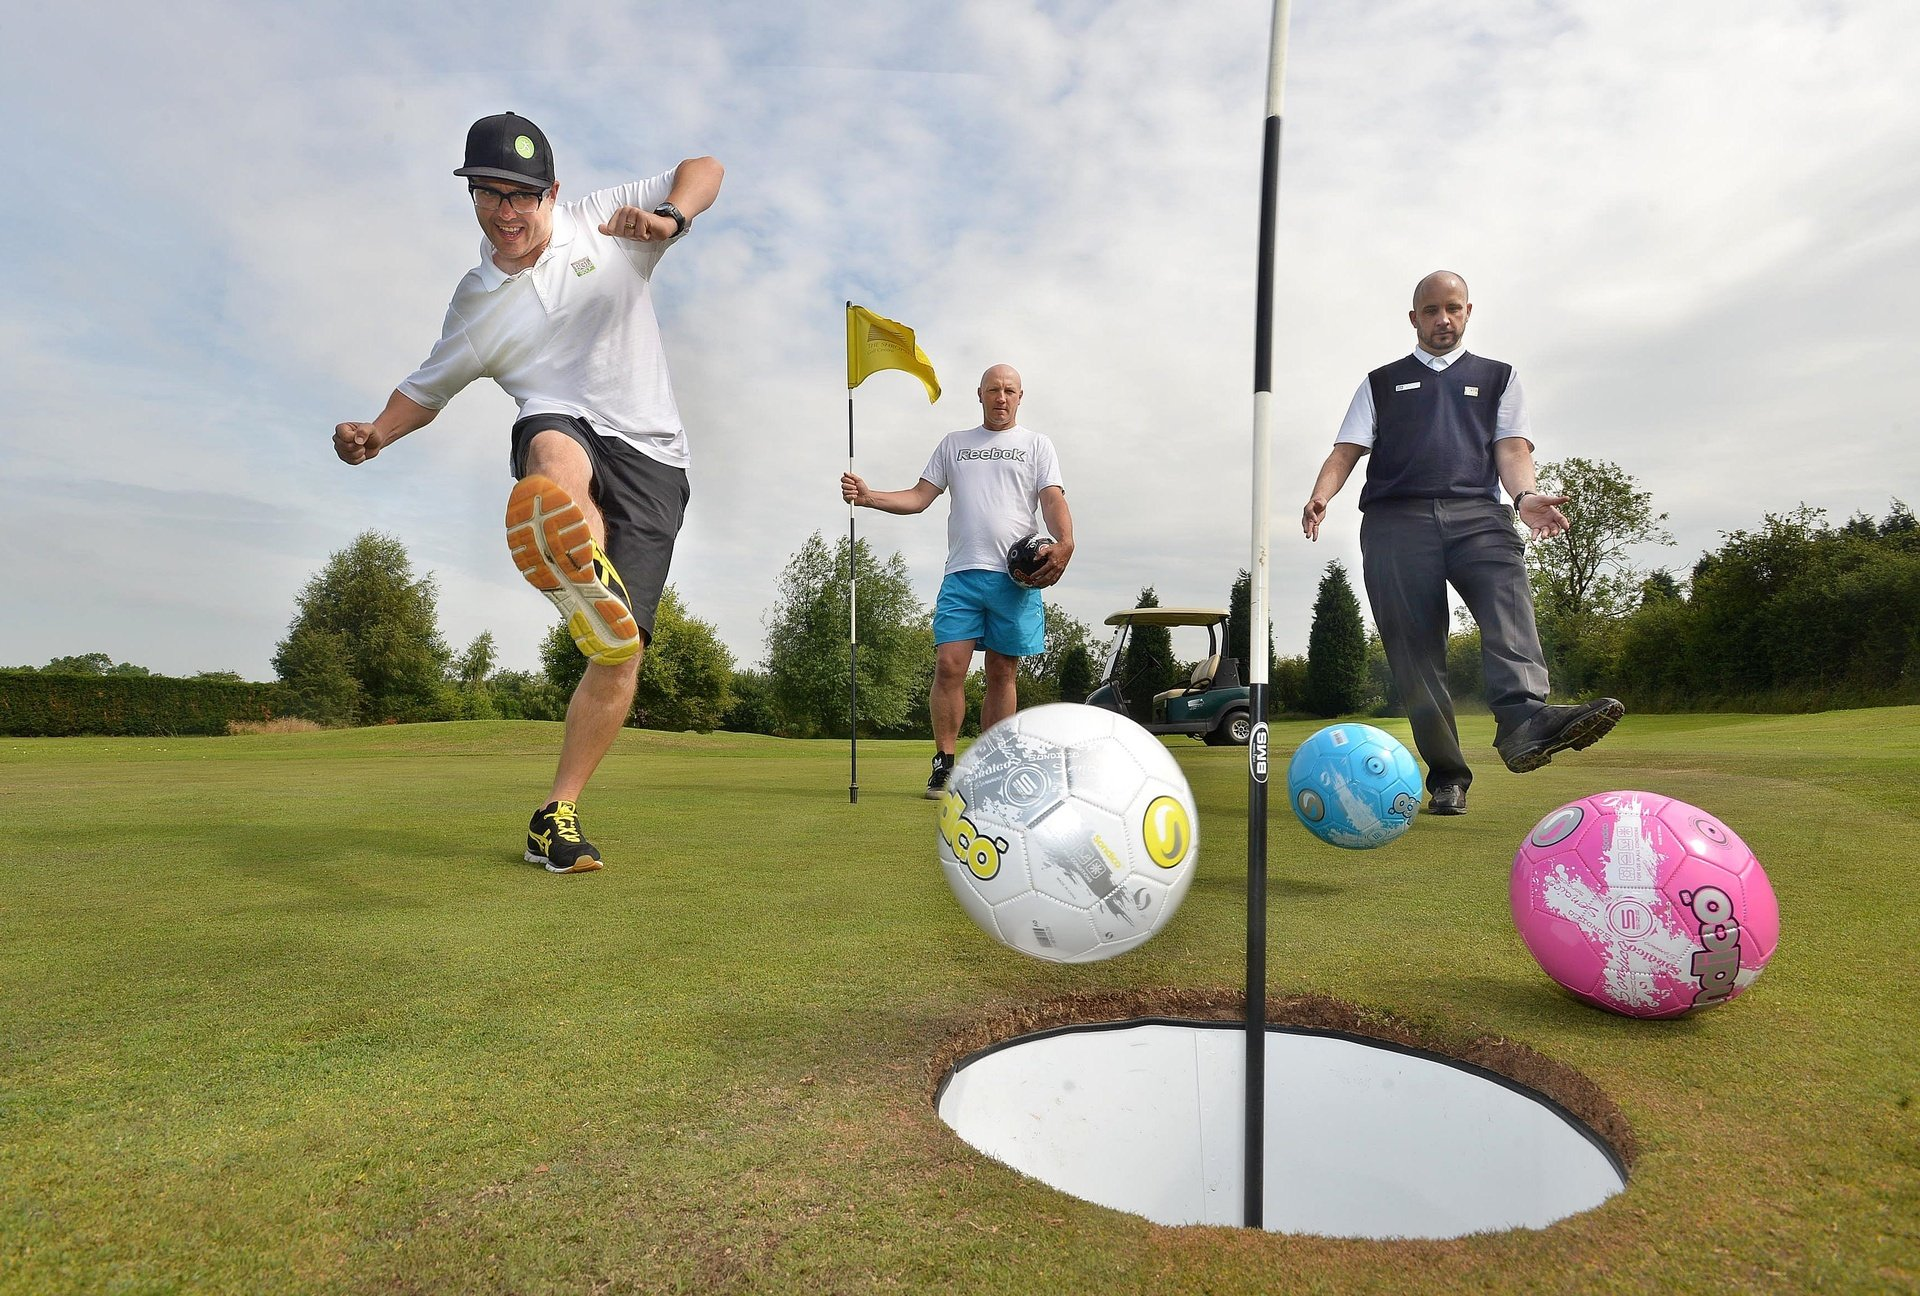 Galway Footgolf Activity - Visit Galway